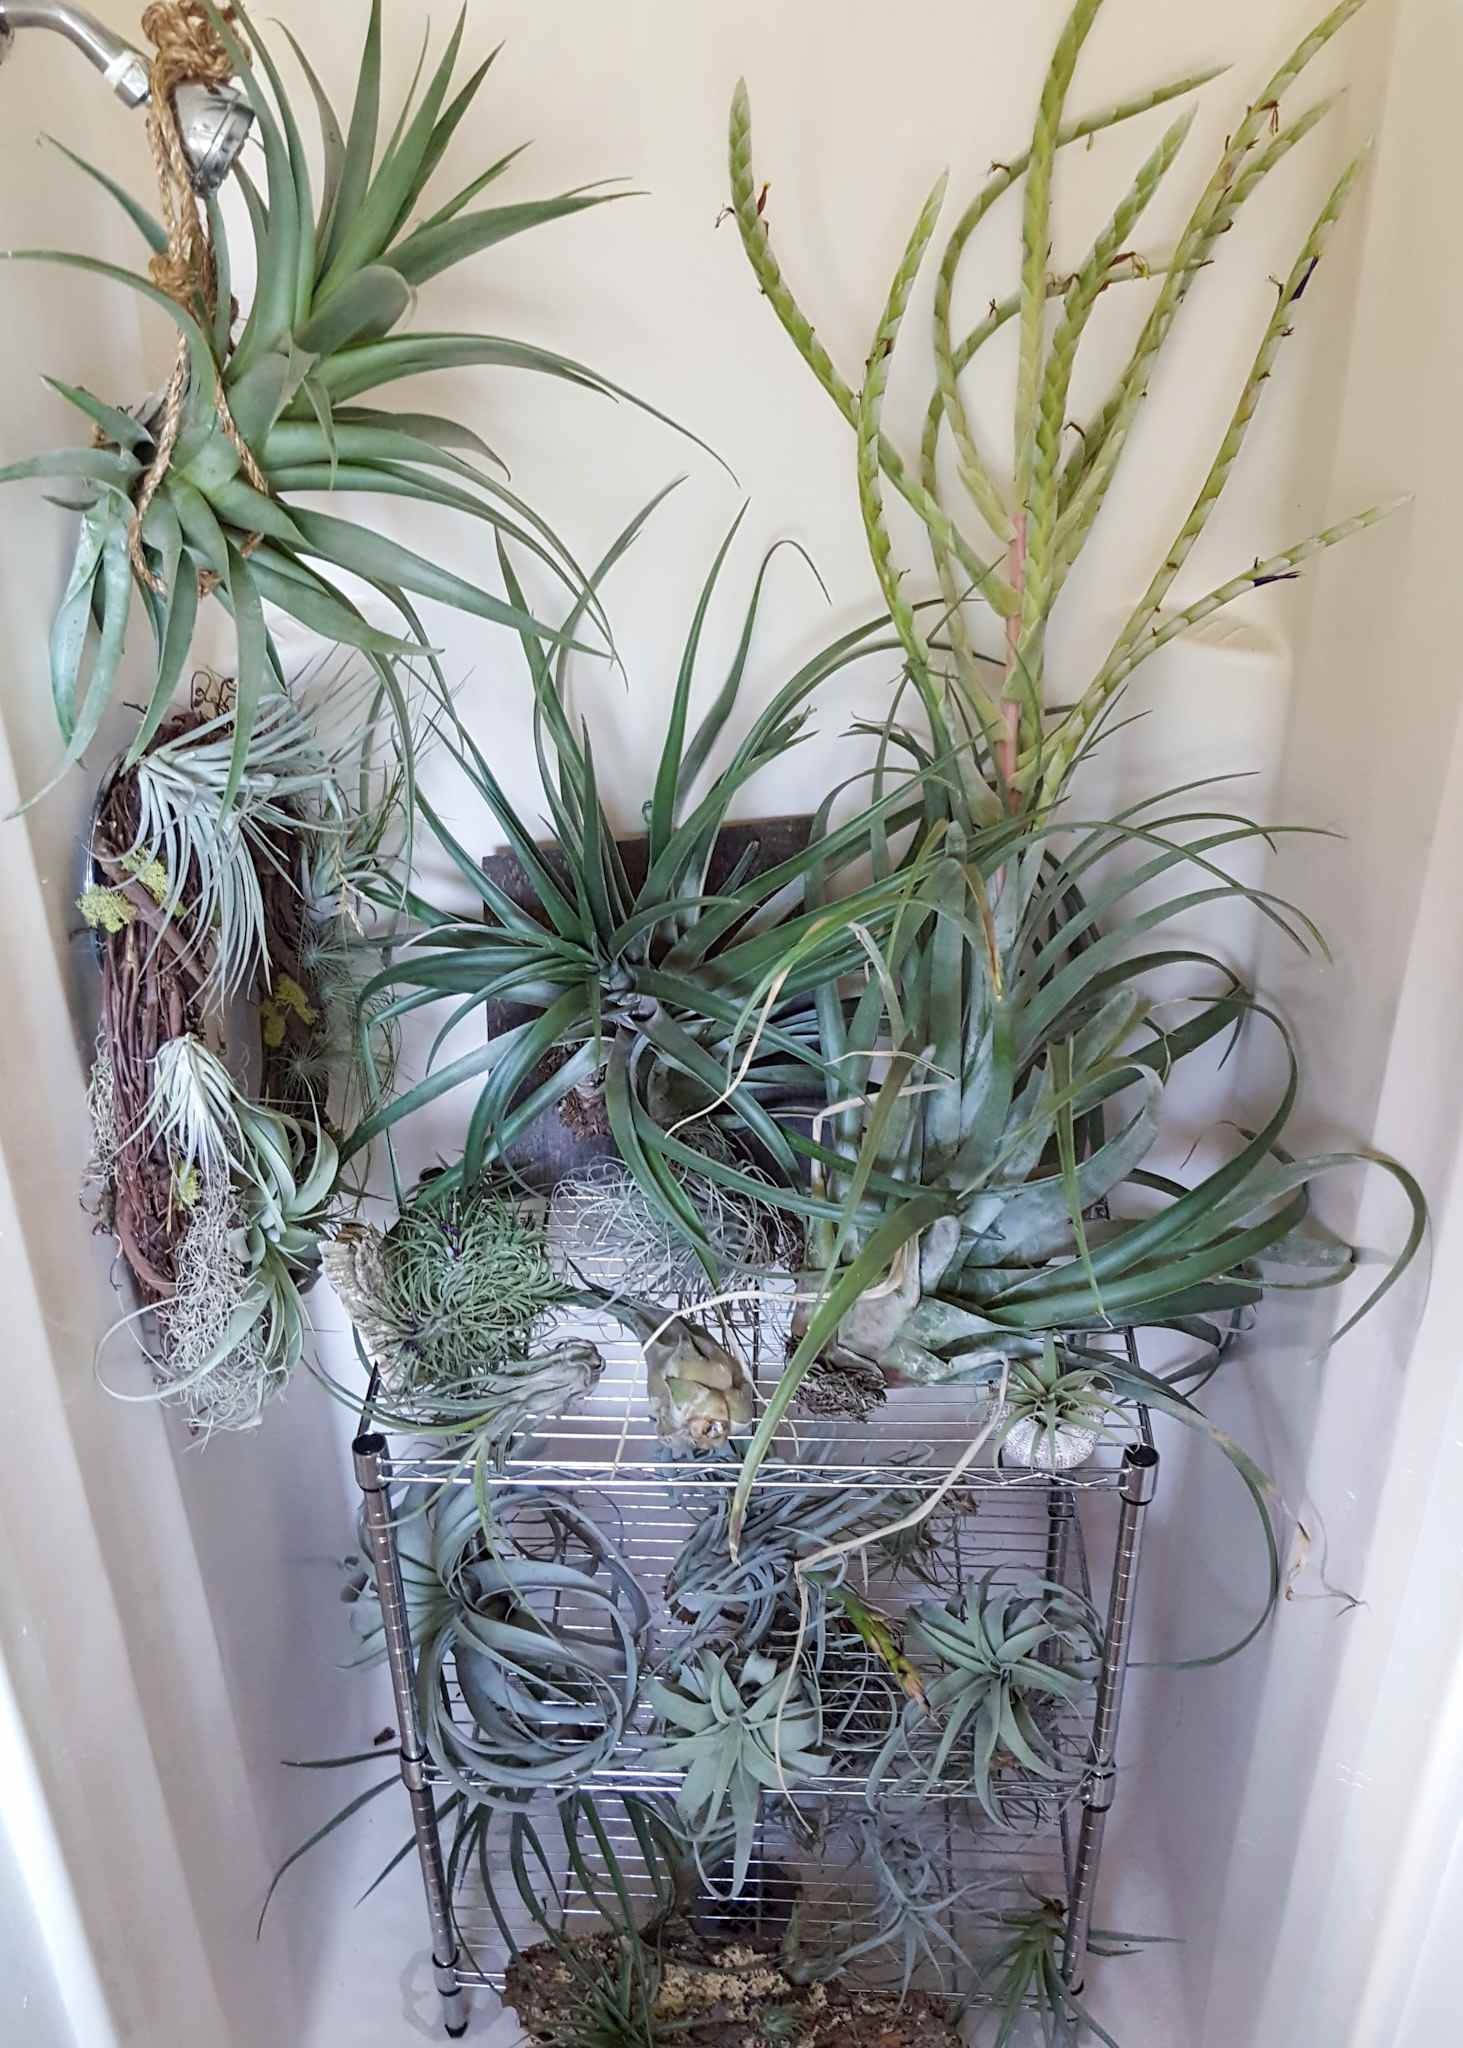 Air Plant Care 101 How To Not Kill Your Tillandsia Homestead